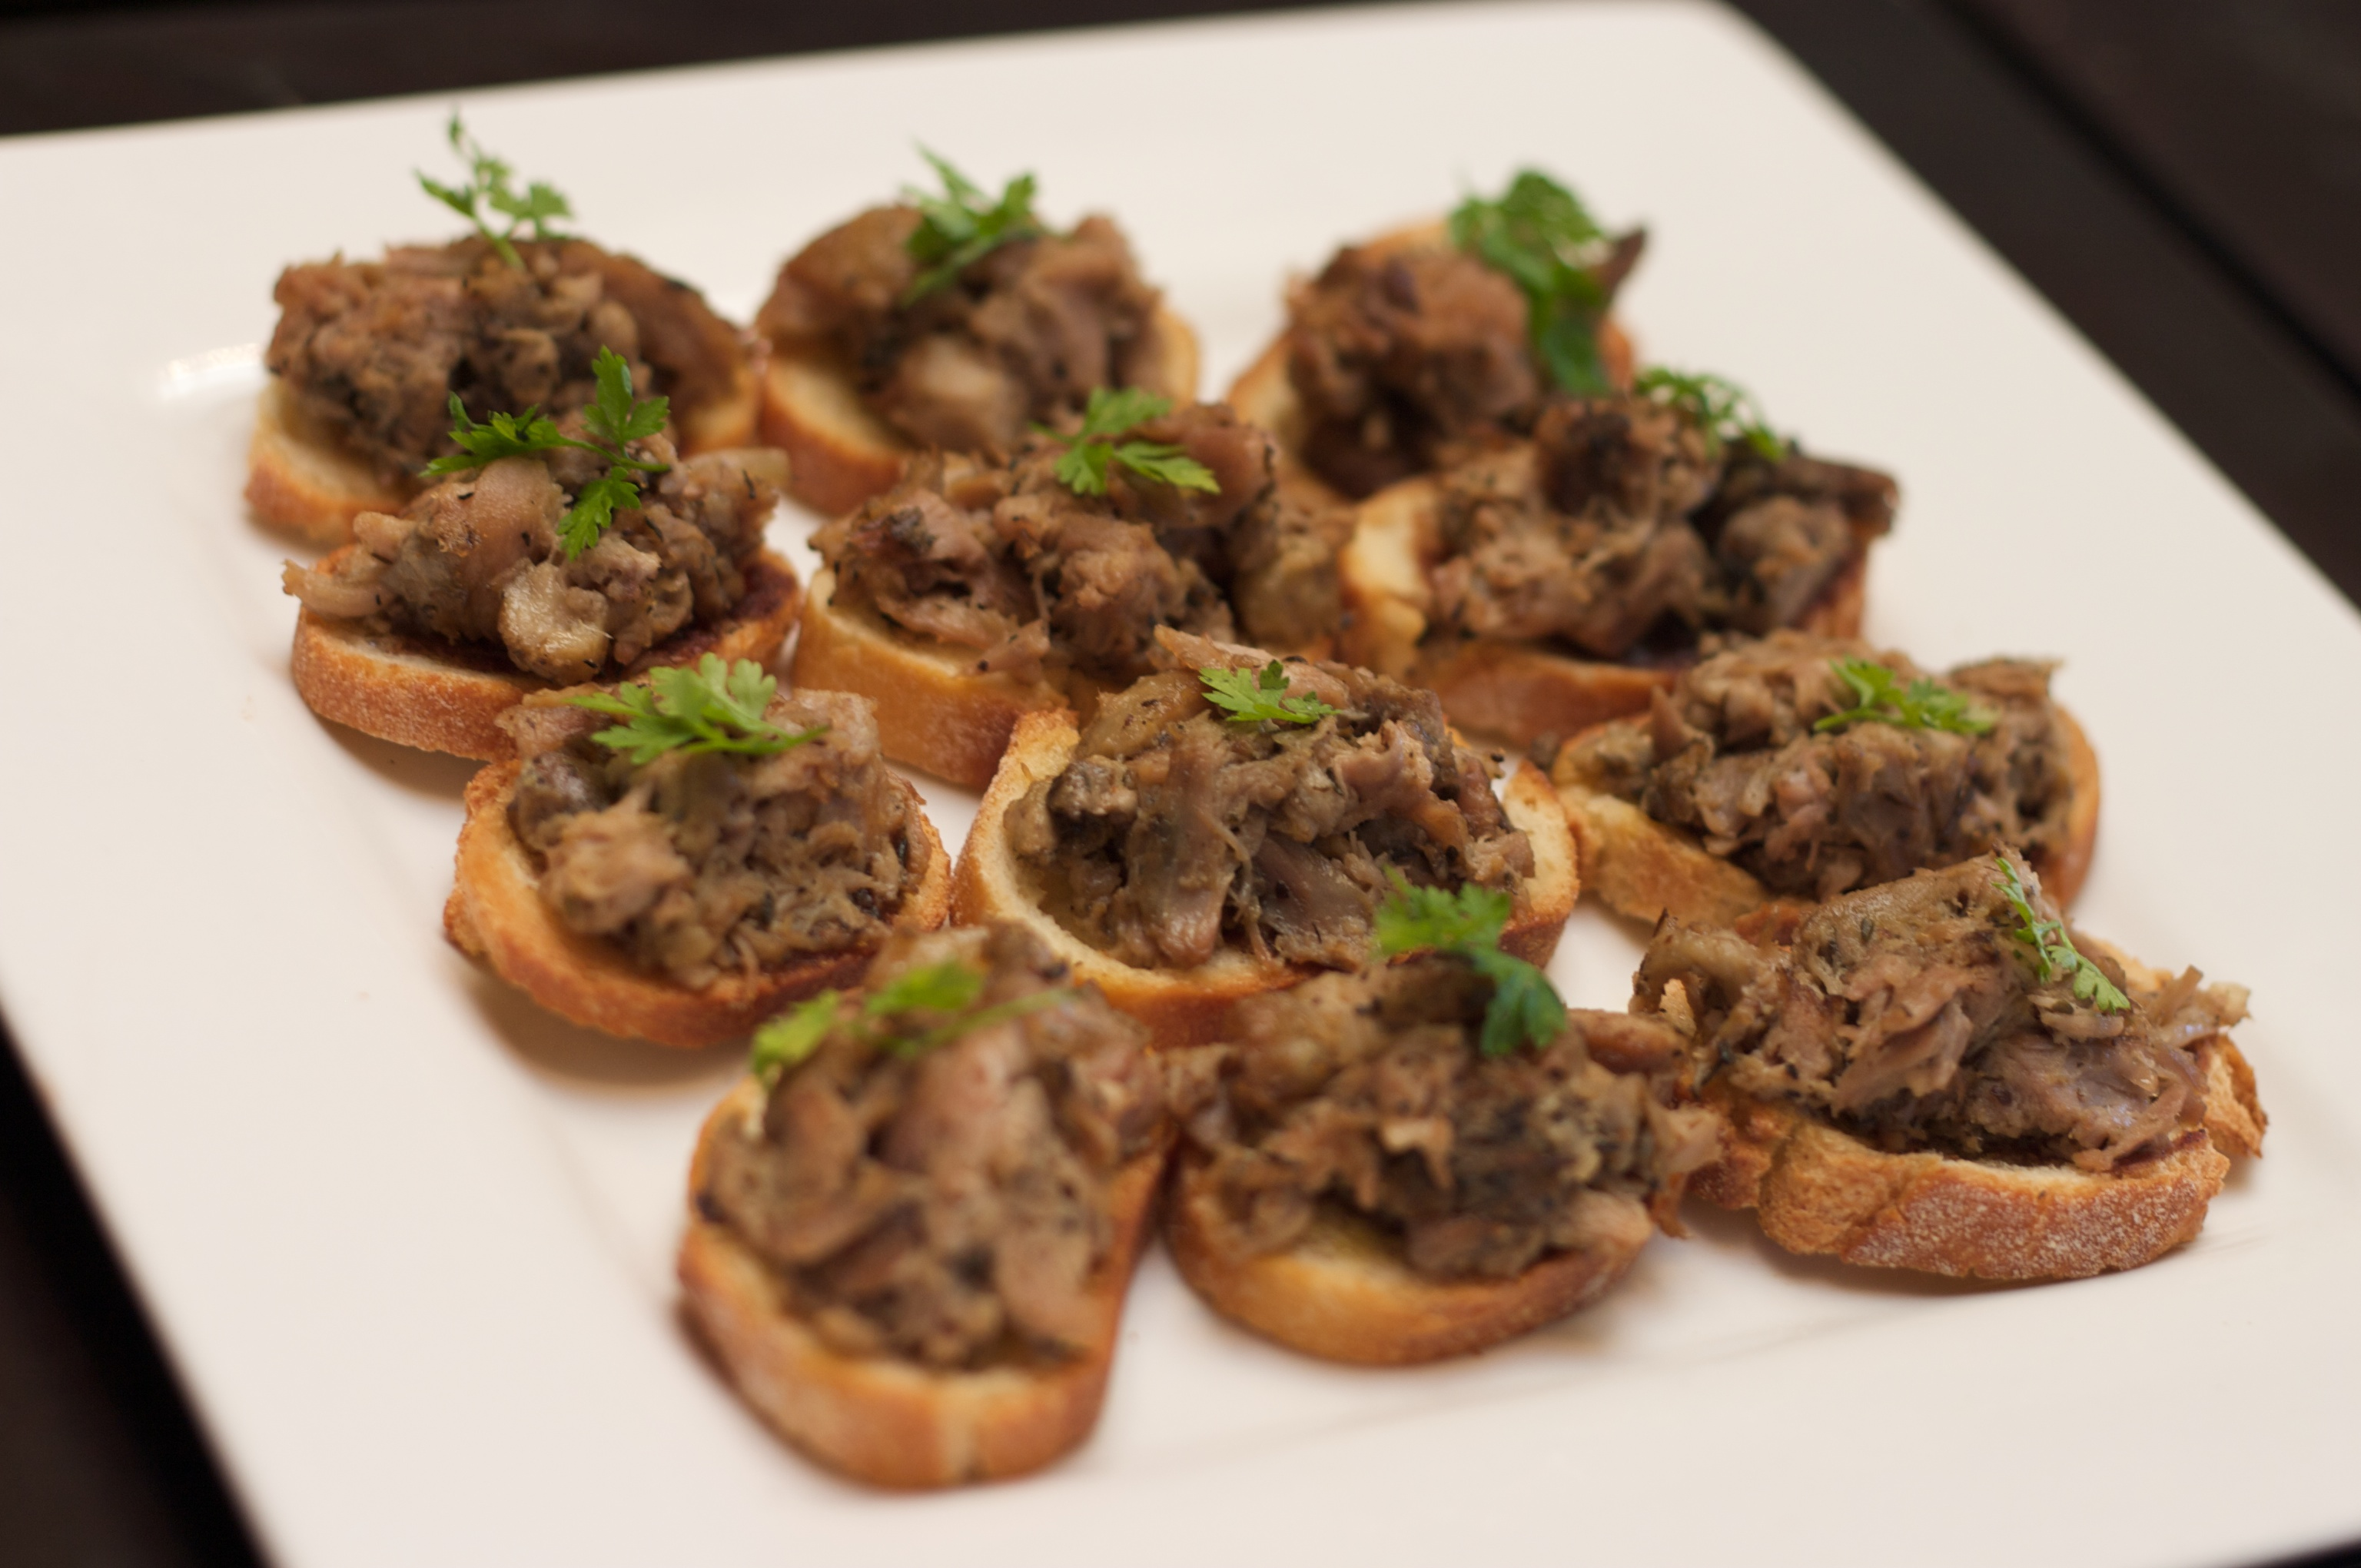 Appetizers events and catering in hawaii for What is a canape appetizer